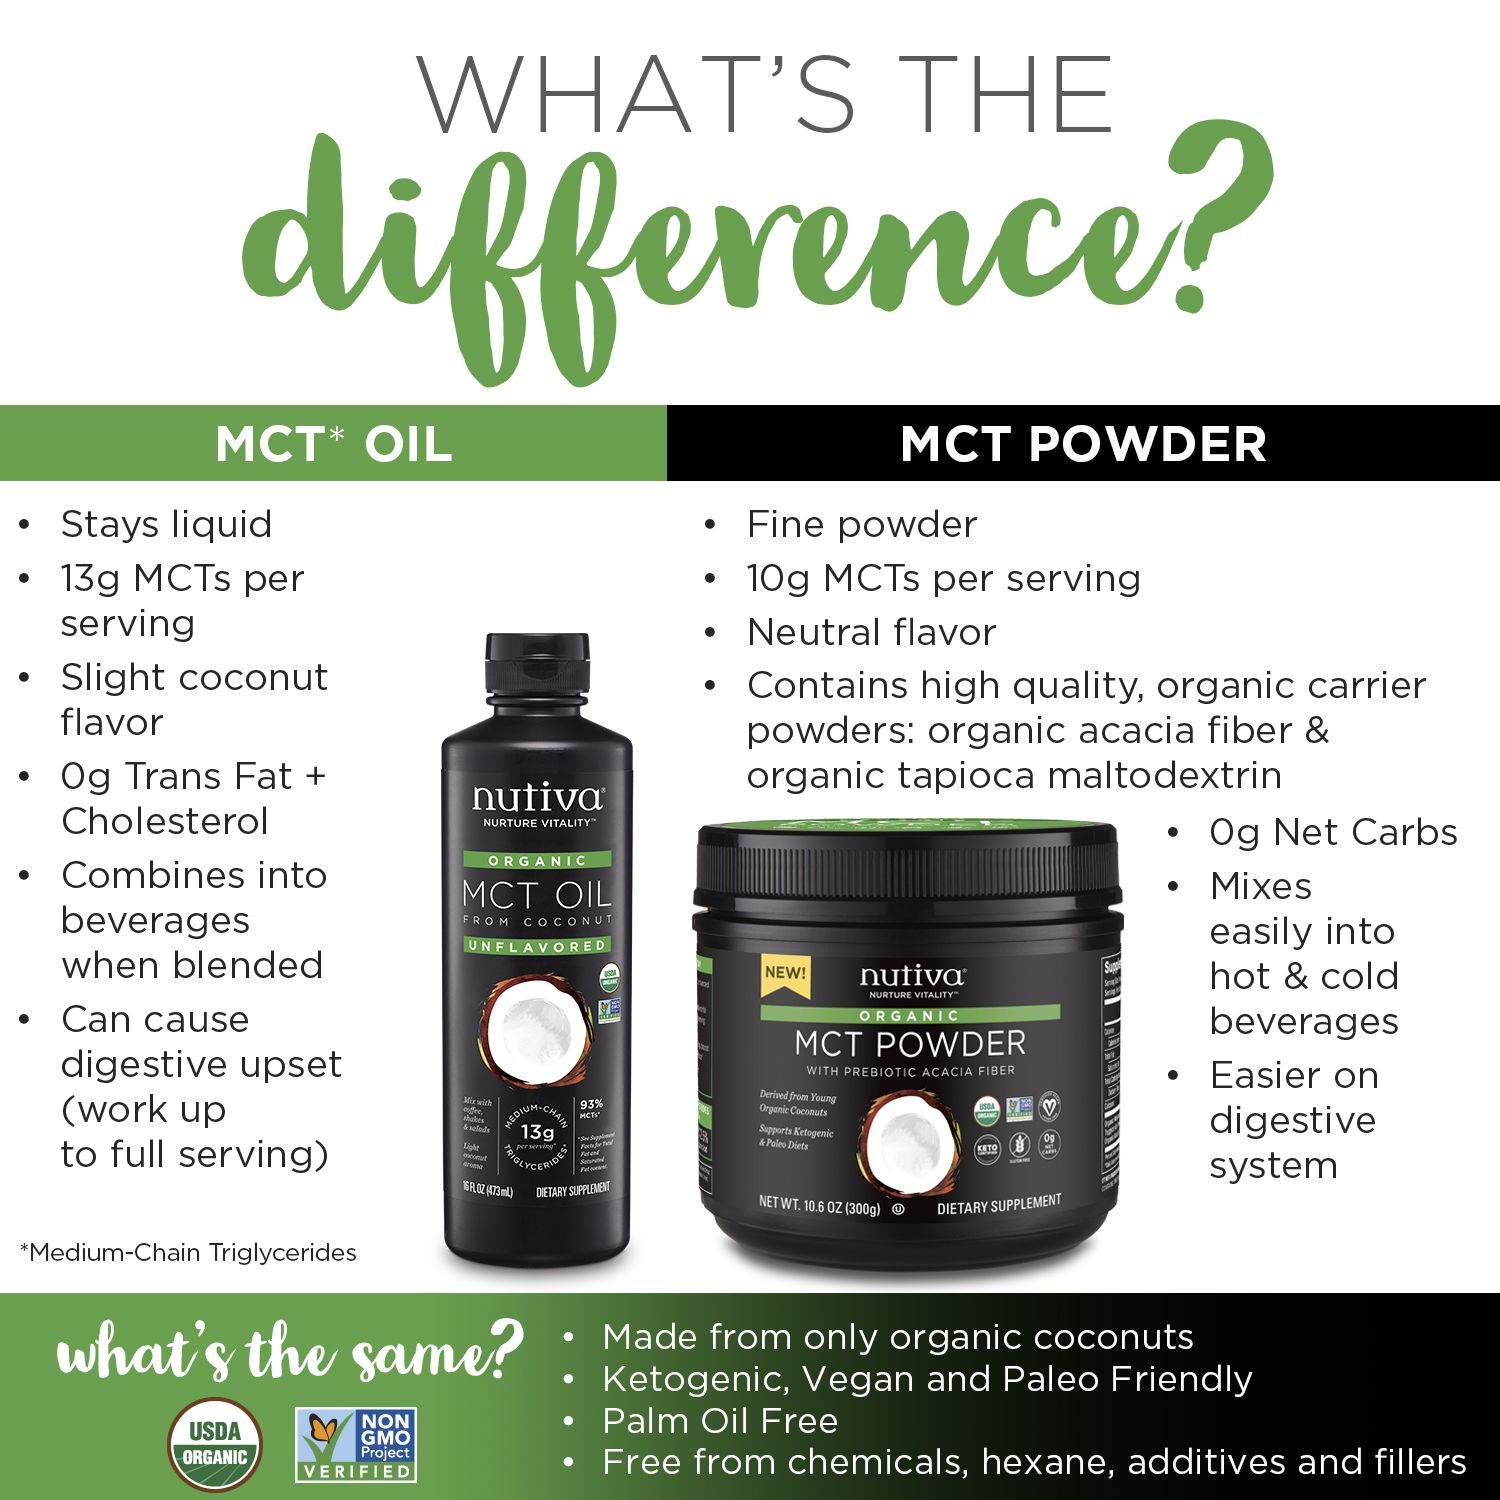 MCT Oil vs MCT Powder: What's the Difference | coconut stuff | Mct